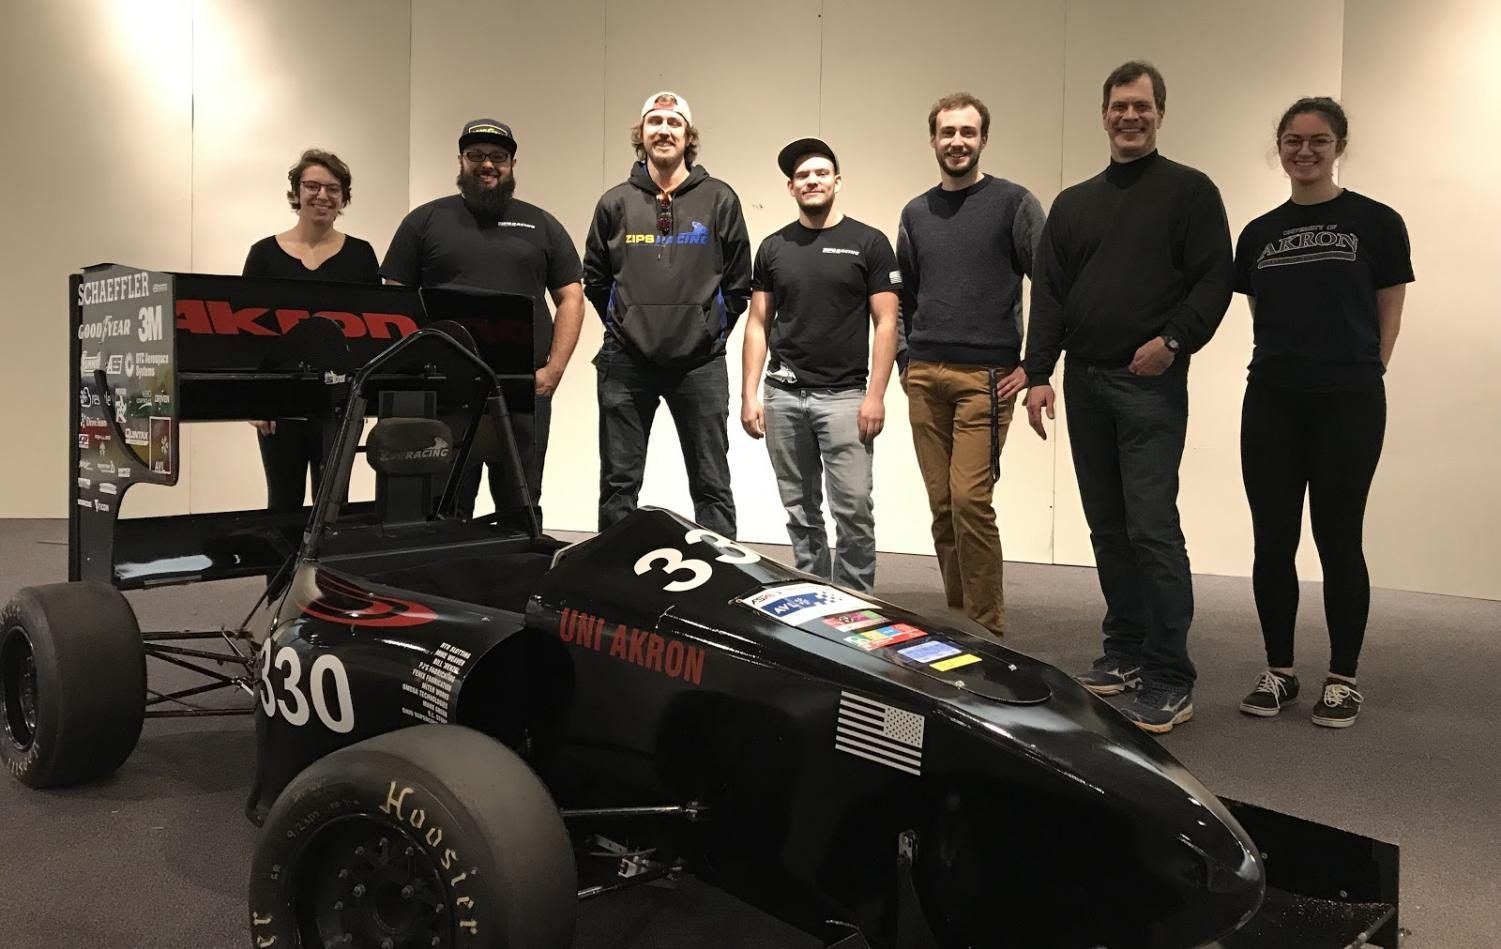 Members of Zips Racing with the 2017 model race car that will be on display at the entrance of the Great Lakes Science Center's Vroom! A Car Adventure exhibit where visitors can get in the driver's seat for a photo. Team members are (from left)  Maria Hatzis, team captain Ezra Malernee, Jacob Greer, Clayton Brown, David McVan, faculty advisor Dr. Daniel Deckler, Ph.D. and Sidney Mingle.